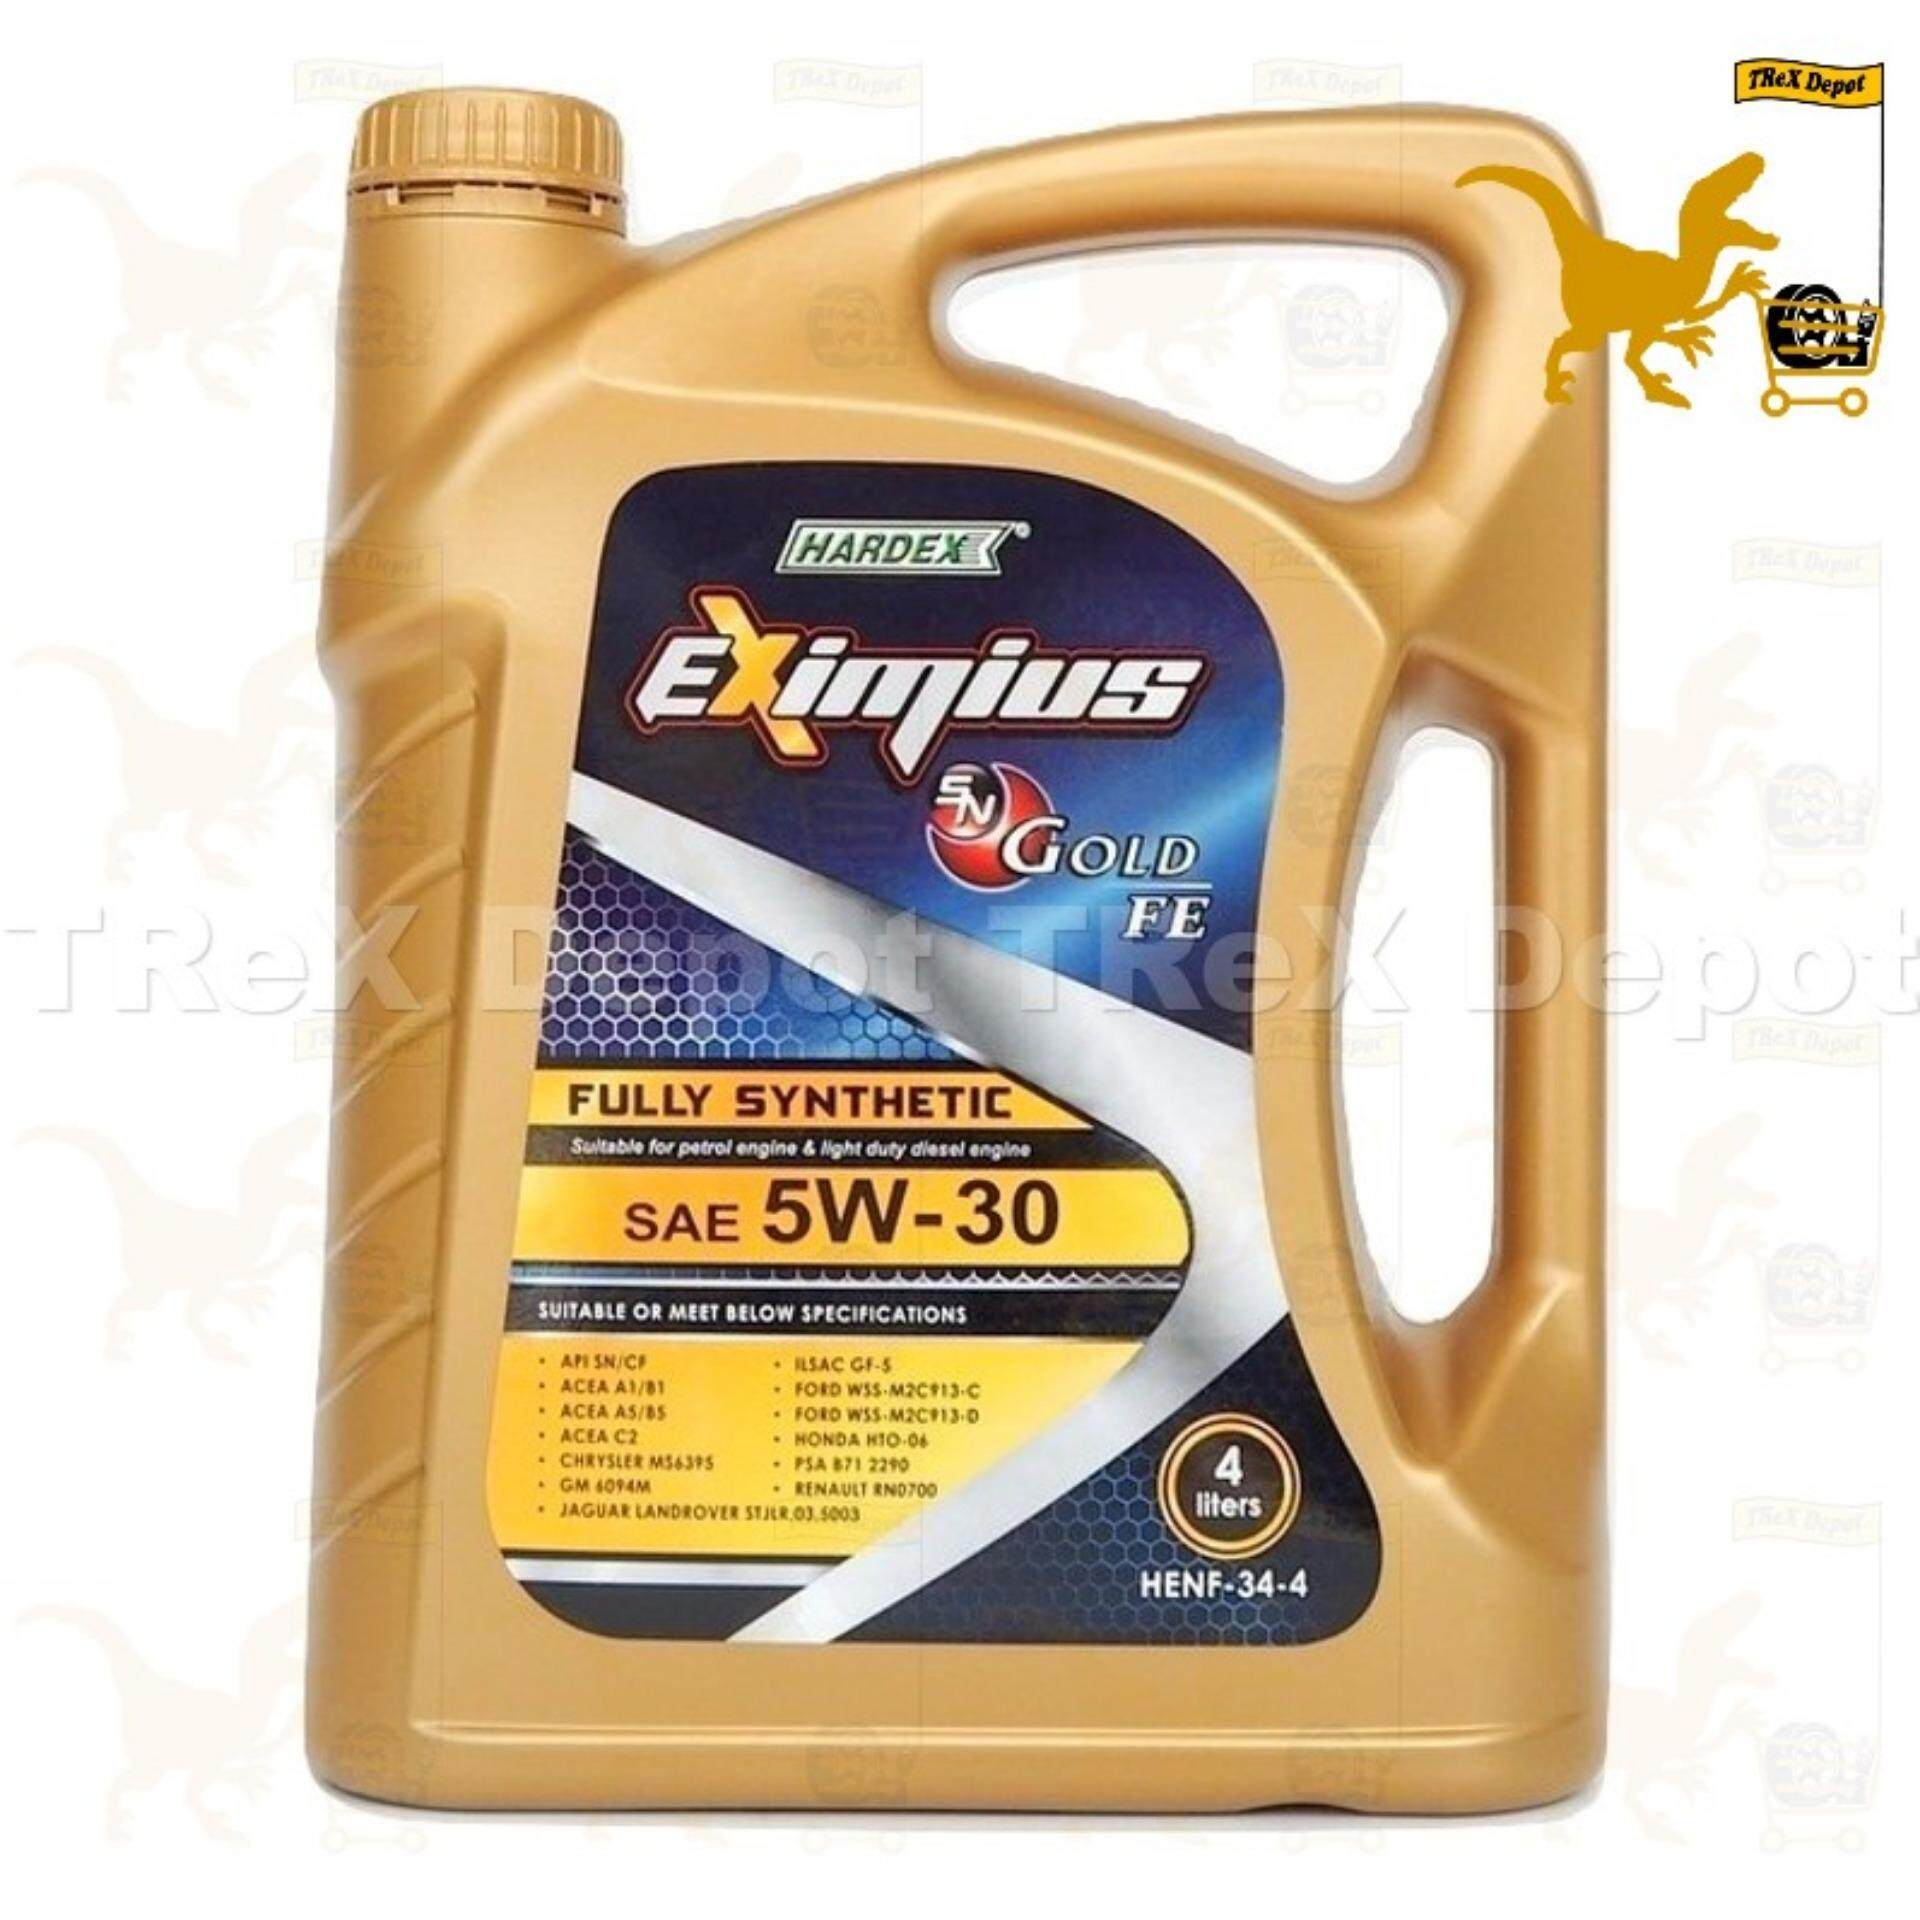 Features Fully Synthetic Castrol Magnatec Stop Start 5w 30 4l Dan Hardex Eximius Gold Fe Gasoline Diesel Engine Oil